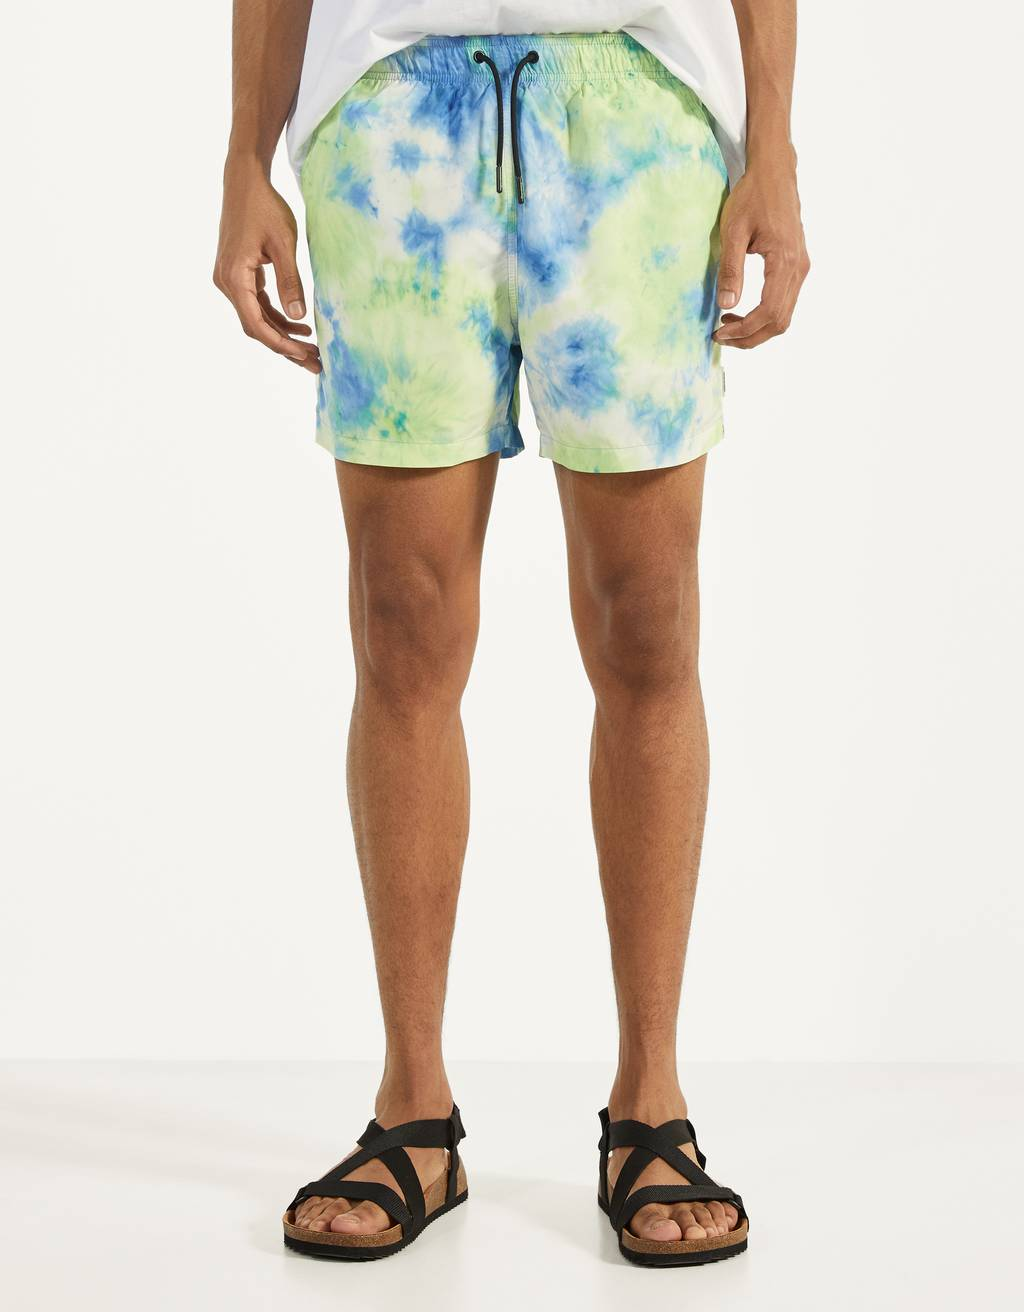 Tie-dye print swimming trunks